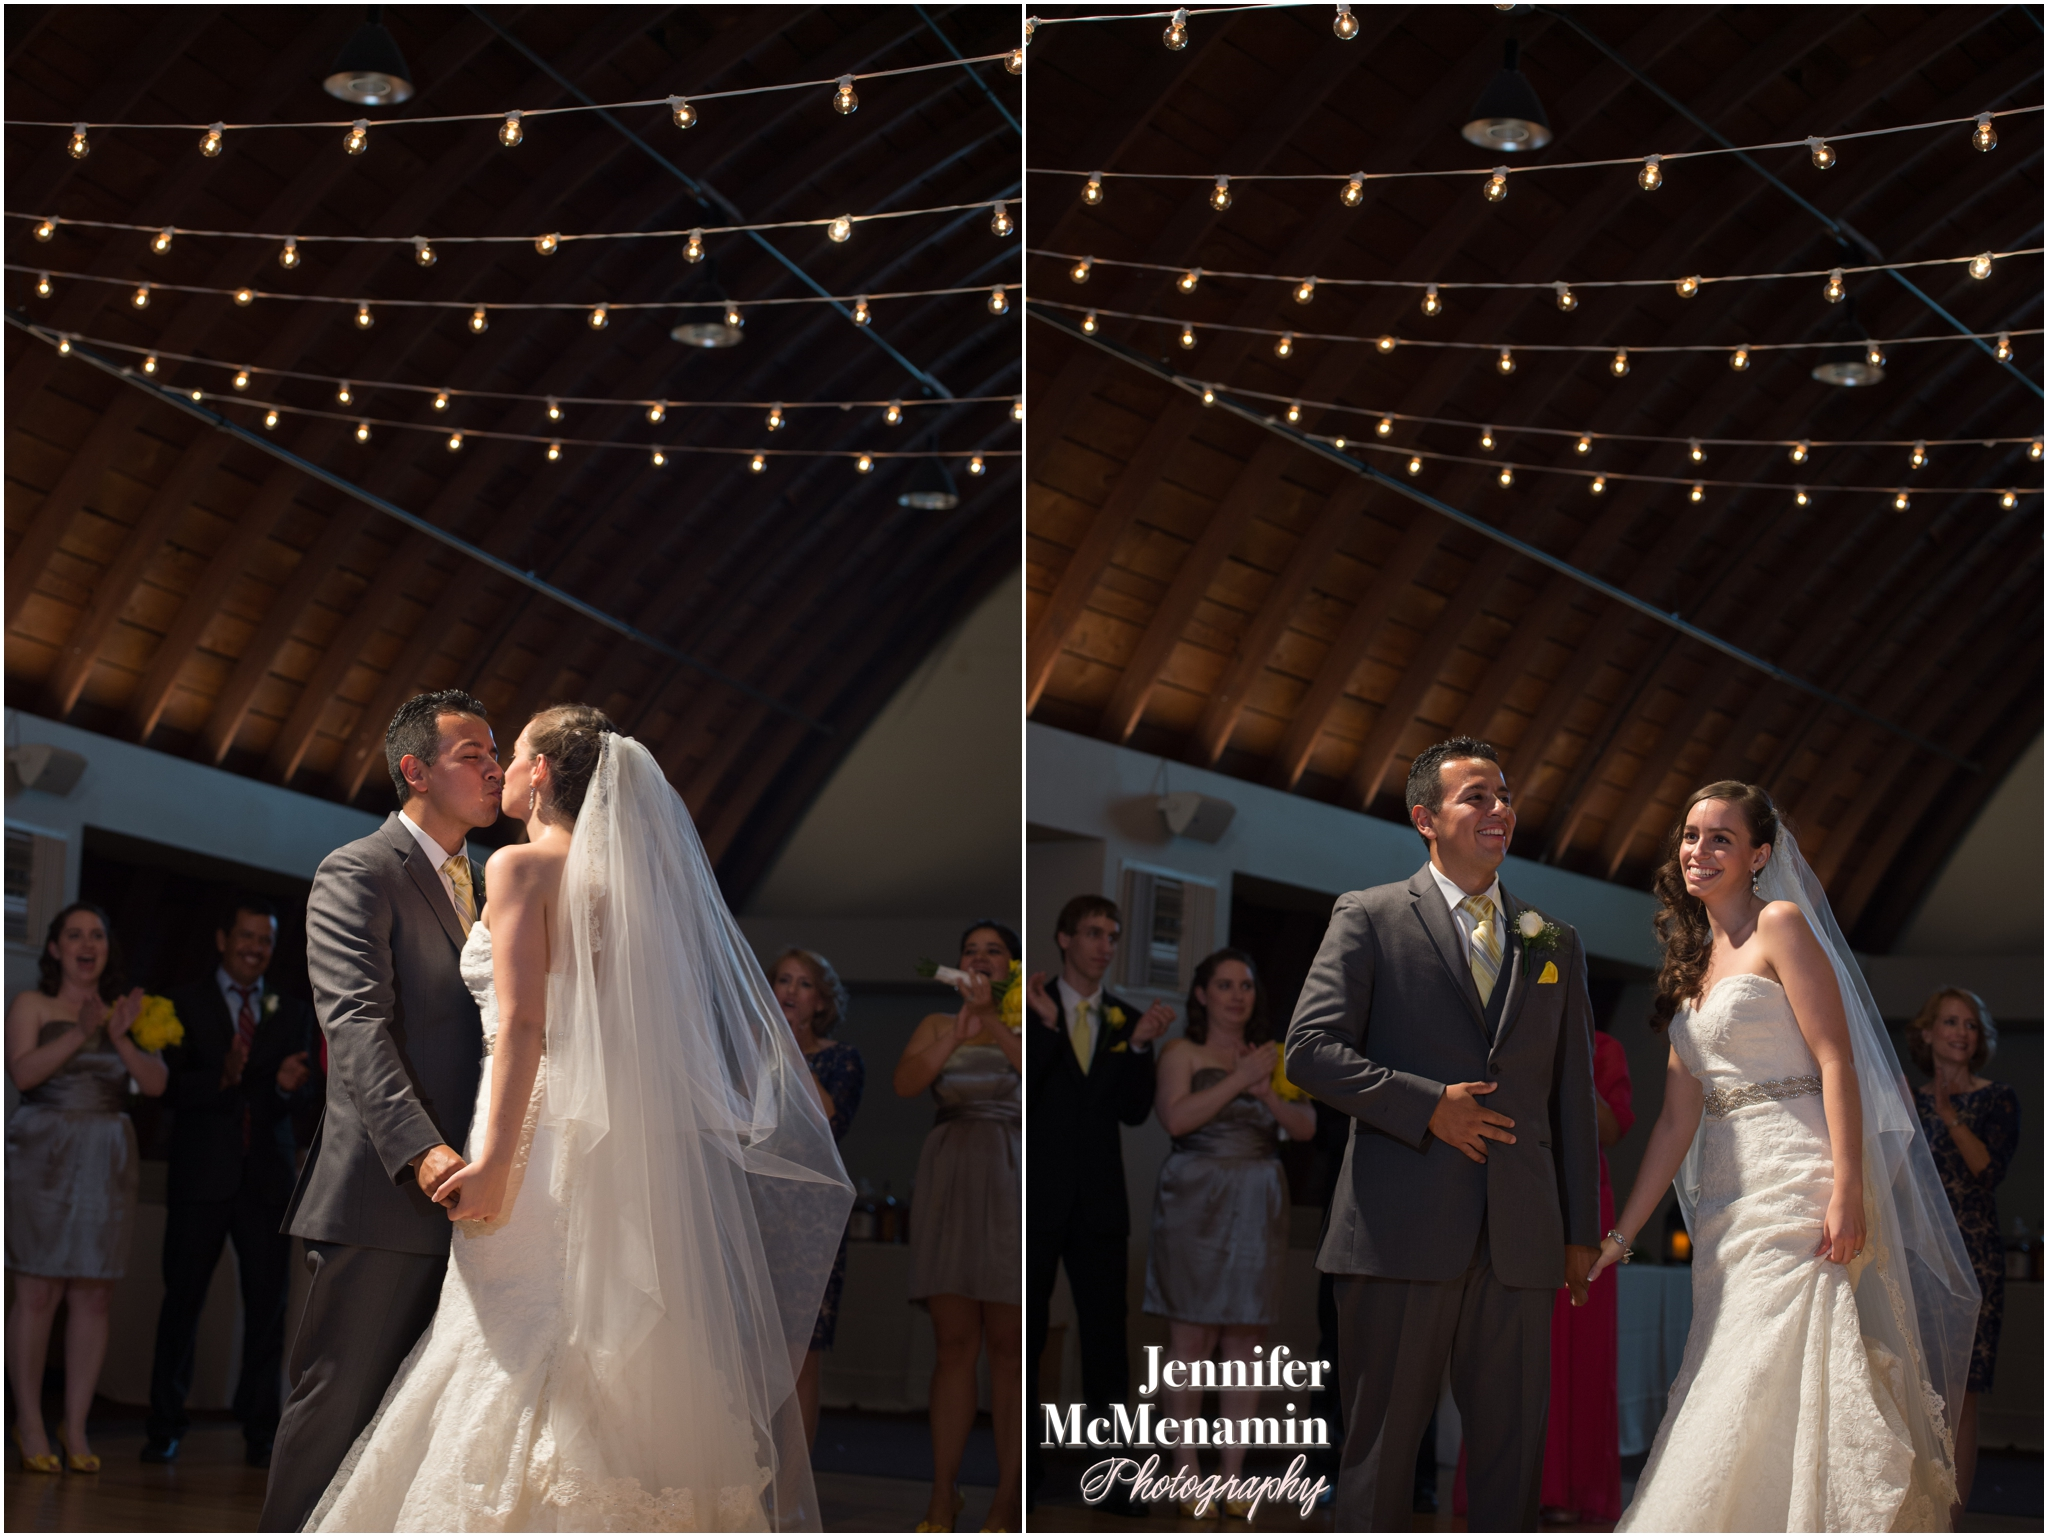 063_SchneiderMagallanes_03016-0619_JenniferMcMenaminPhotography_Baltimore-wedding-photography_St-Mary-of-the-Mills-Church_The-Other-Barn_Maryland-wedding-photography